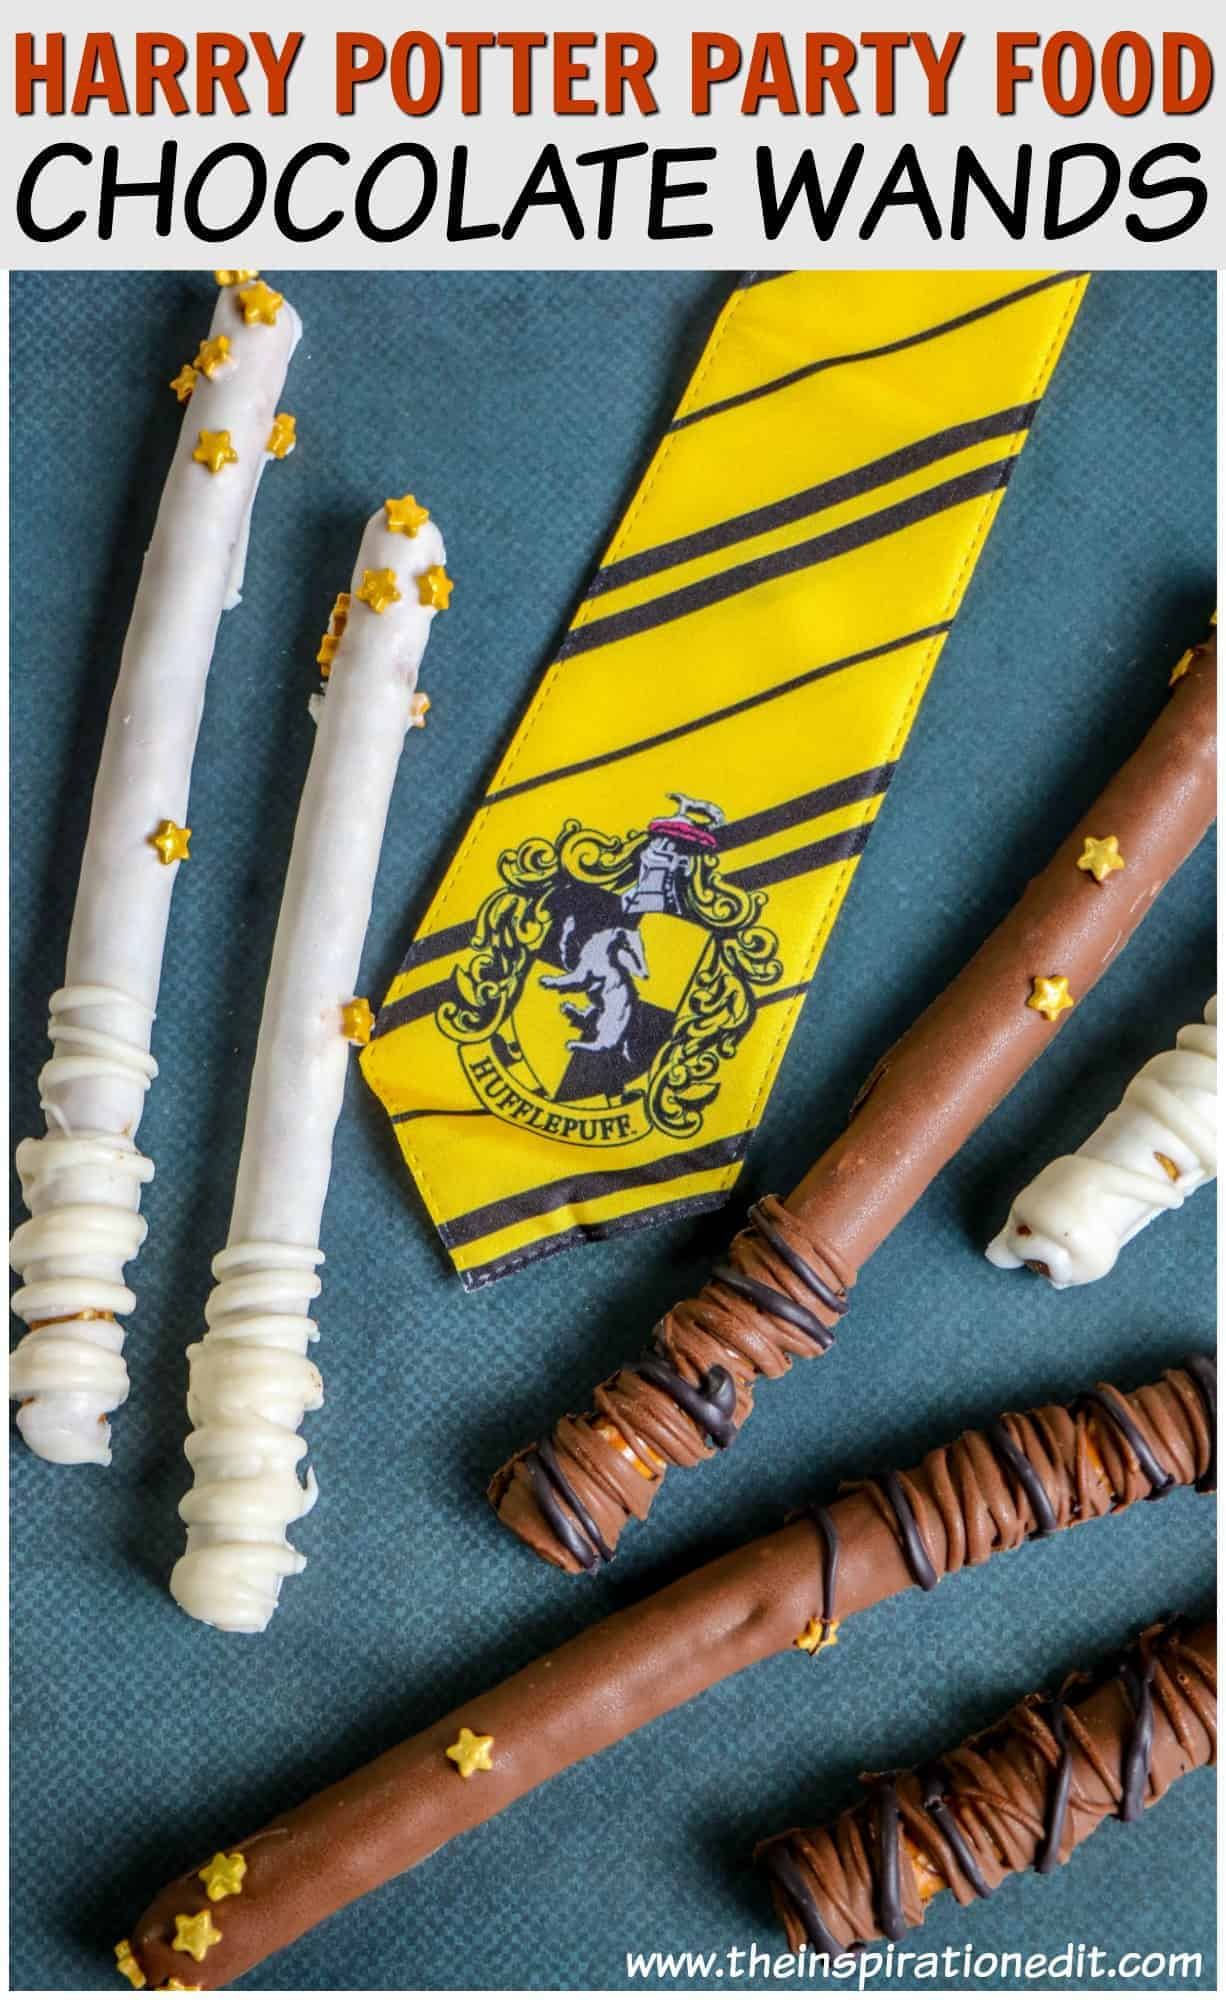 Harry Potter Party Food Wands